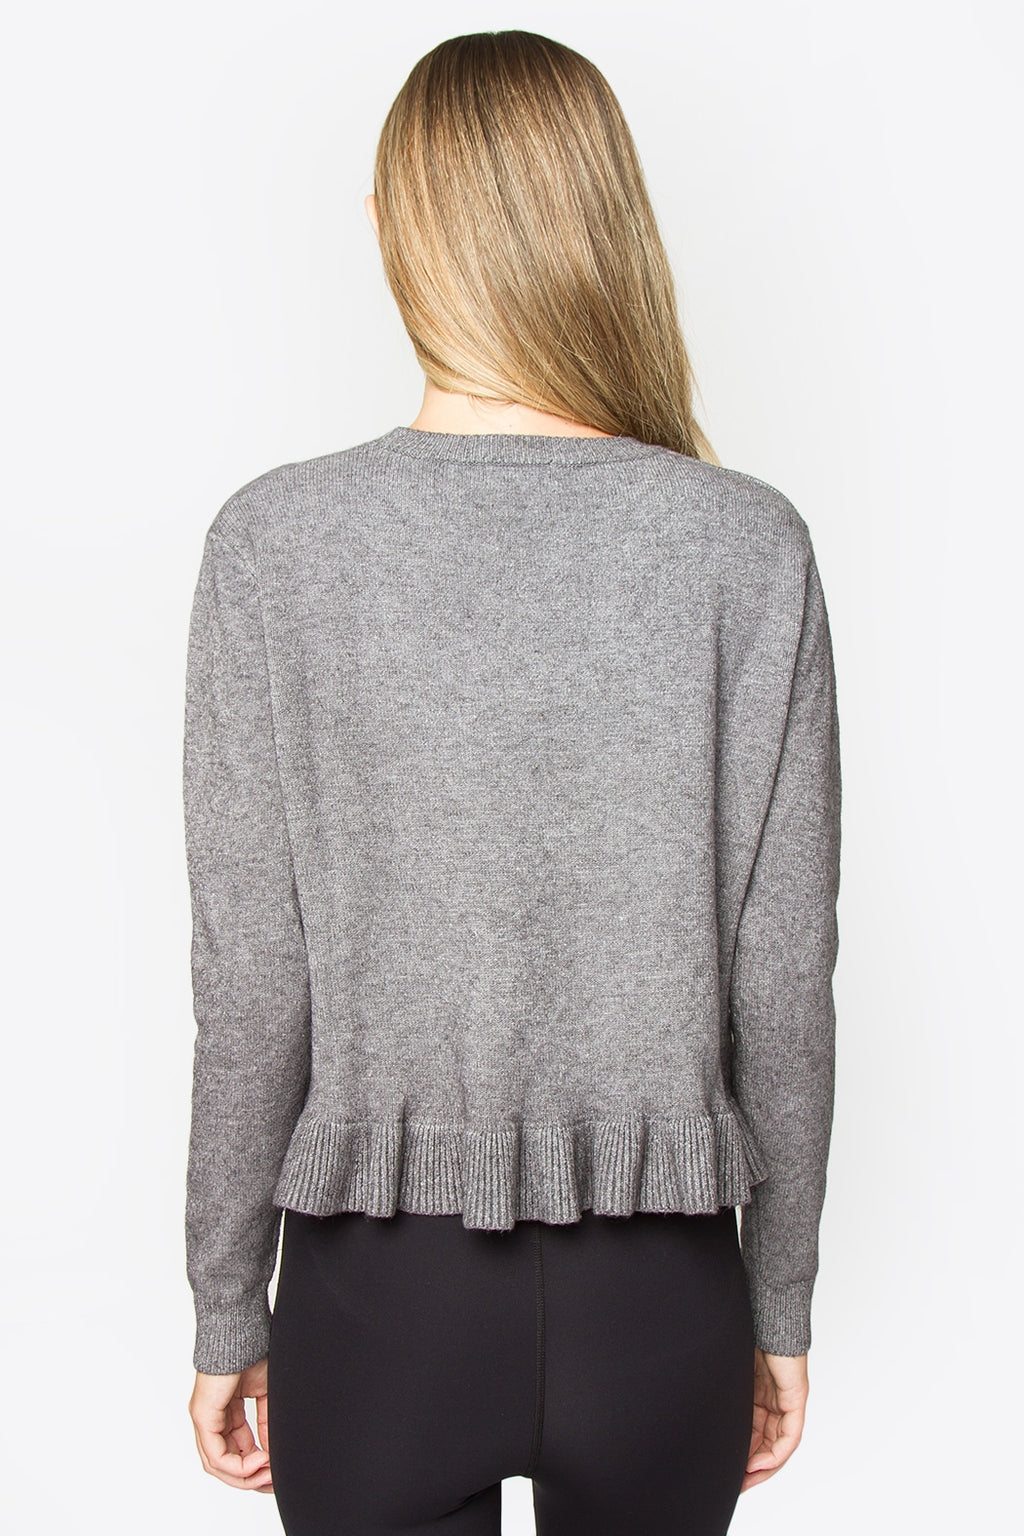 Kimika Ruffle Detail Sweater - Grey